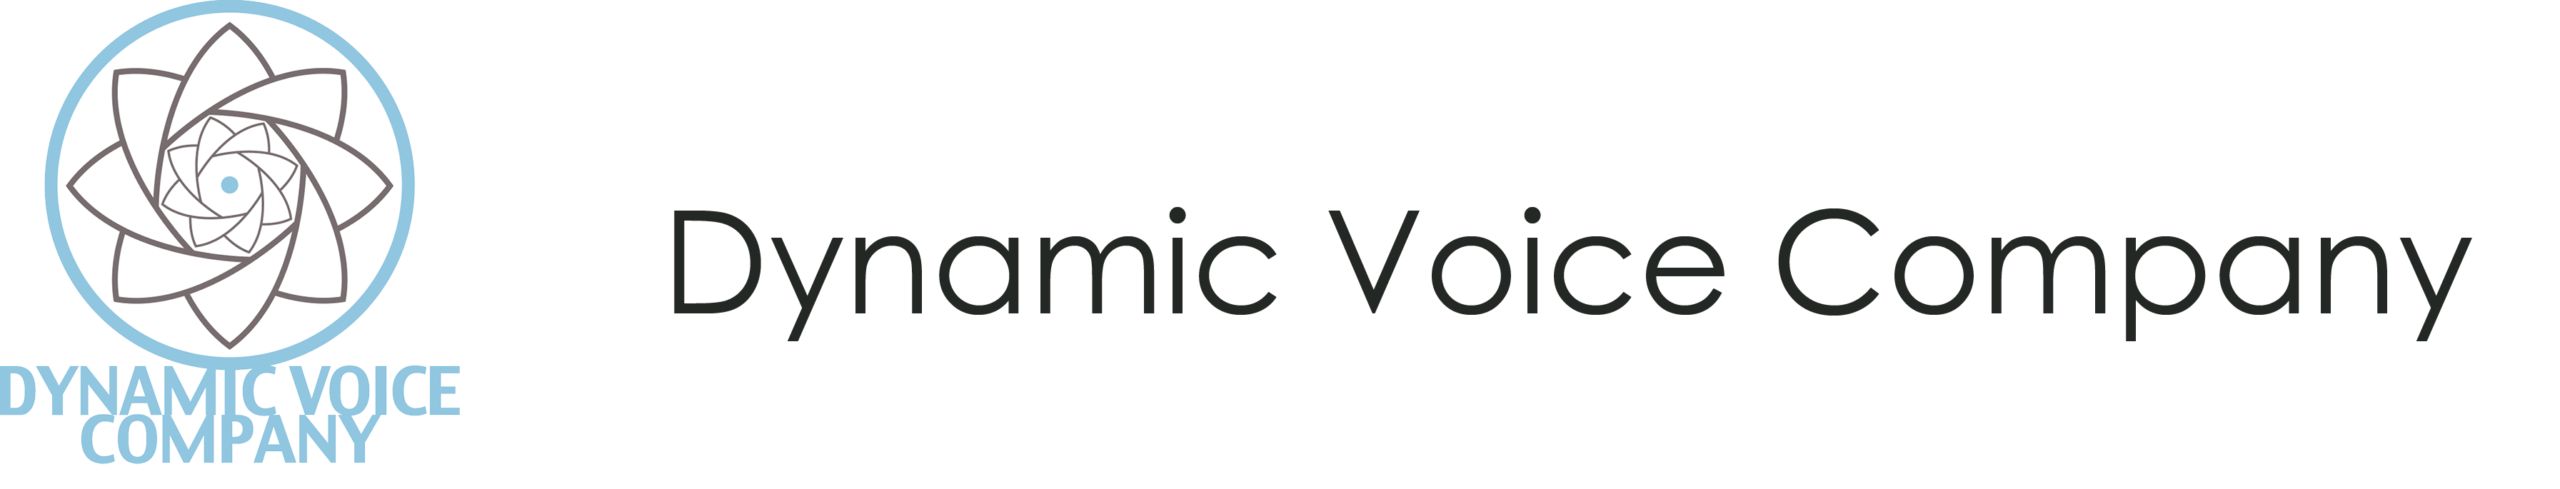 Dynamic Voice Company banner